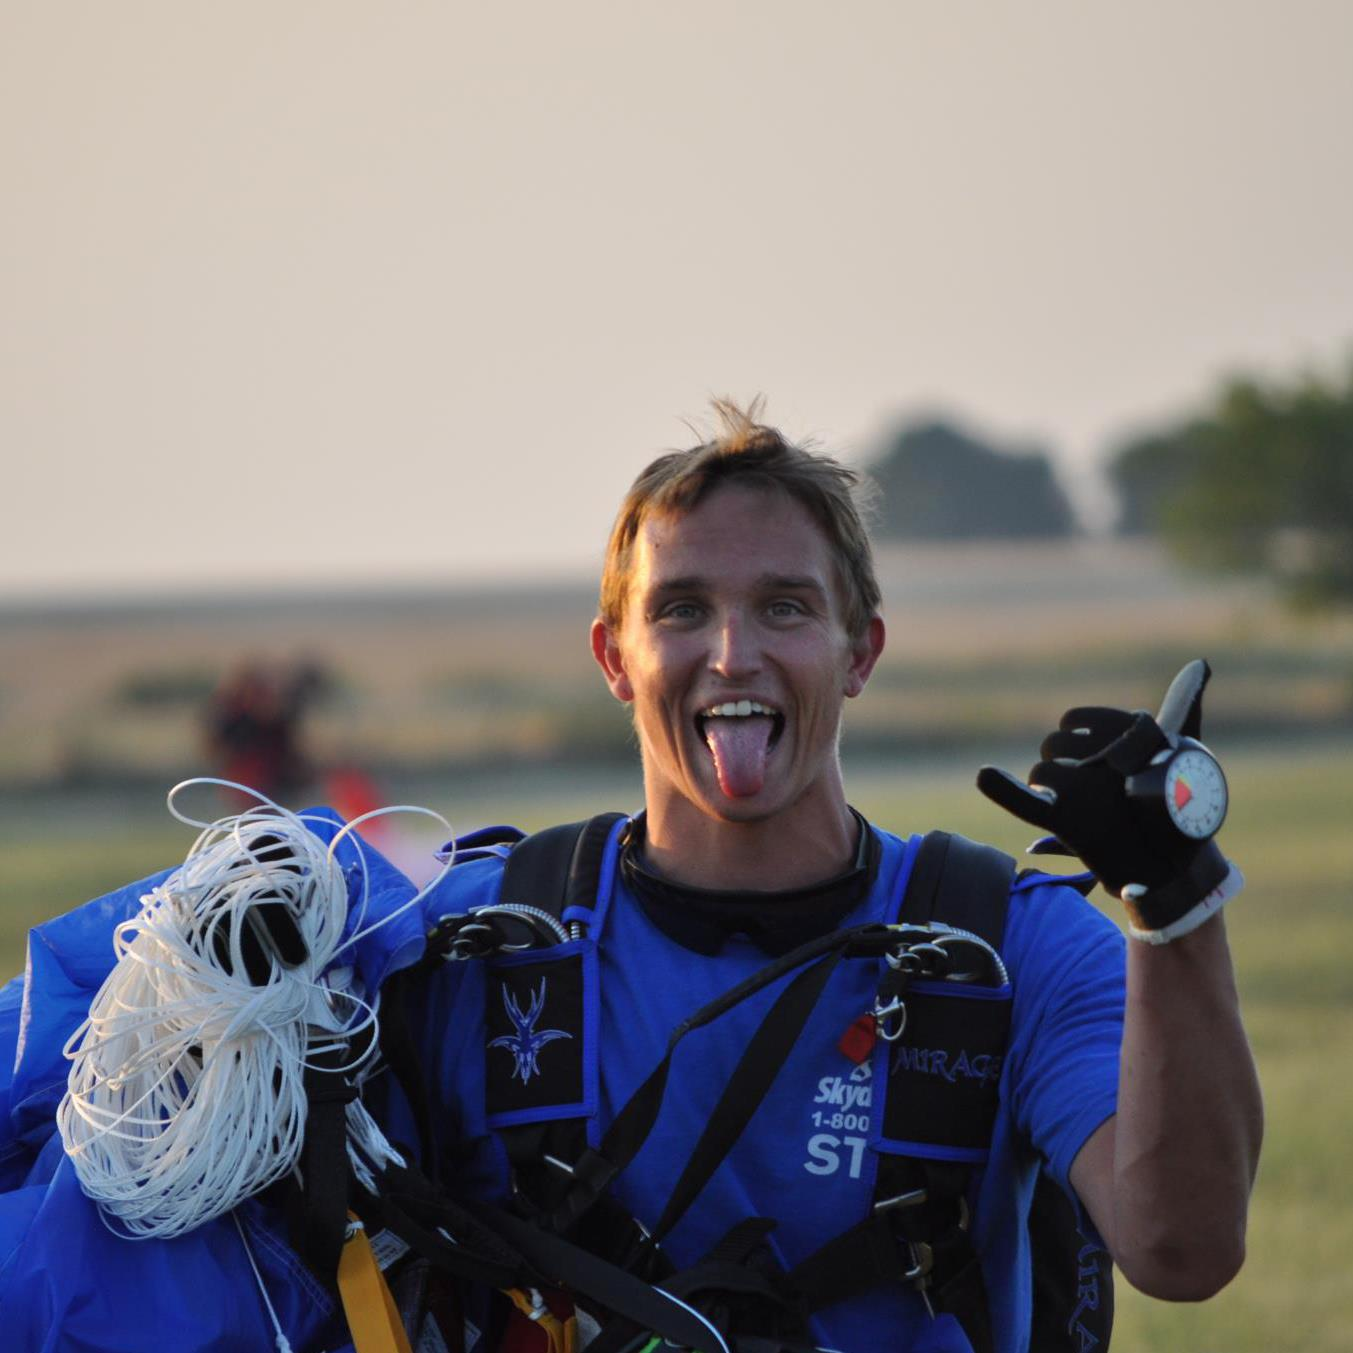 Dallas man recovering from skydiving accident